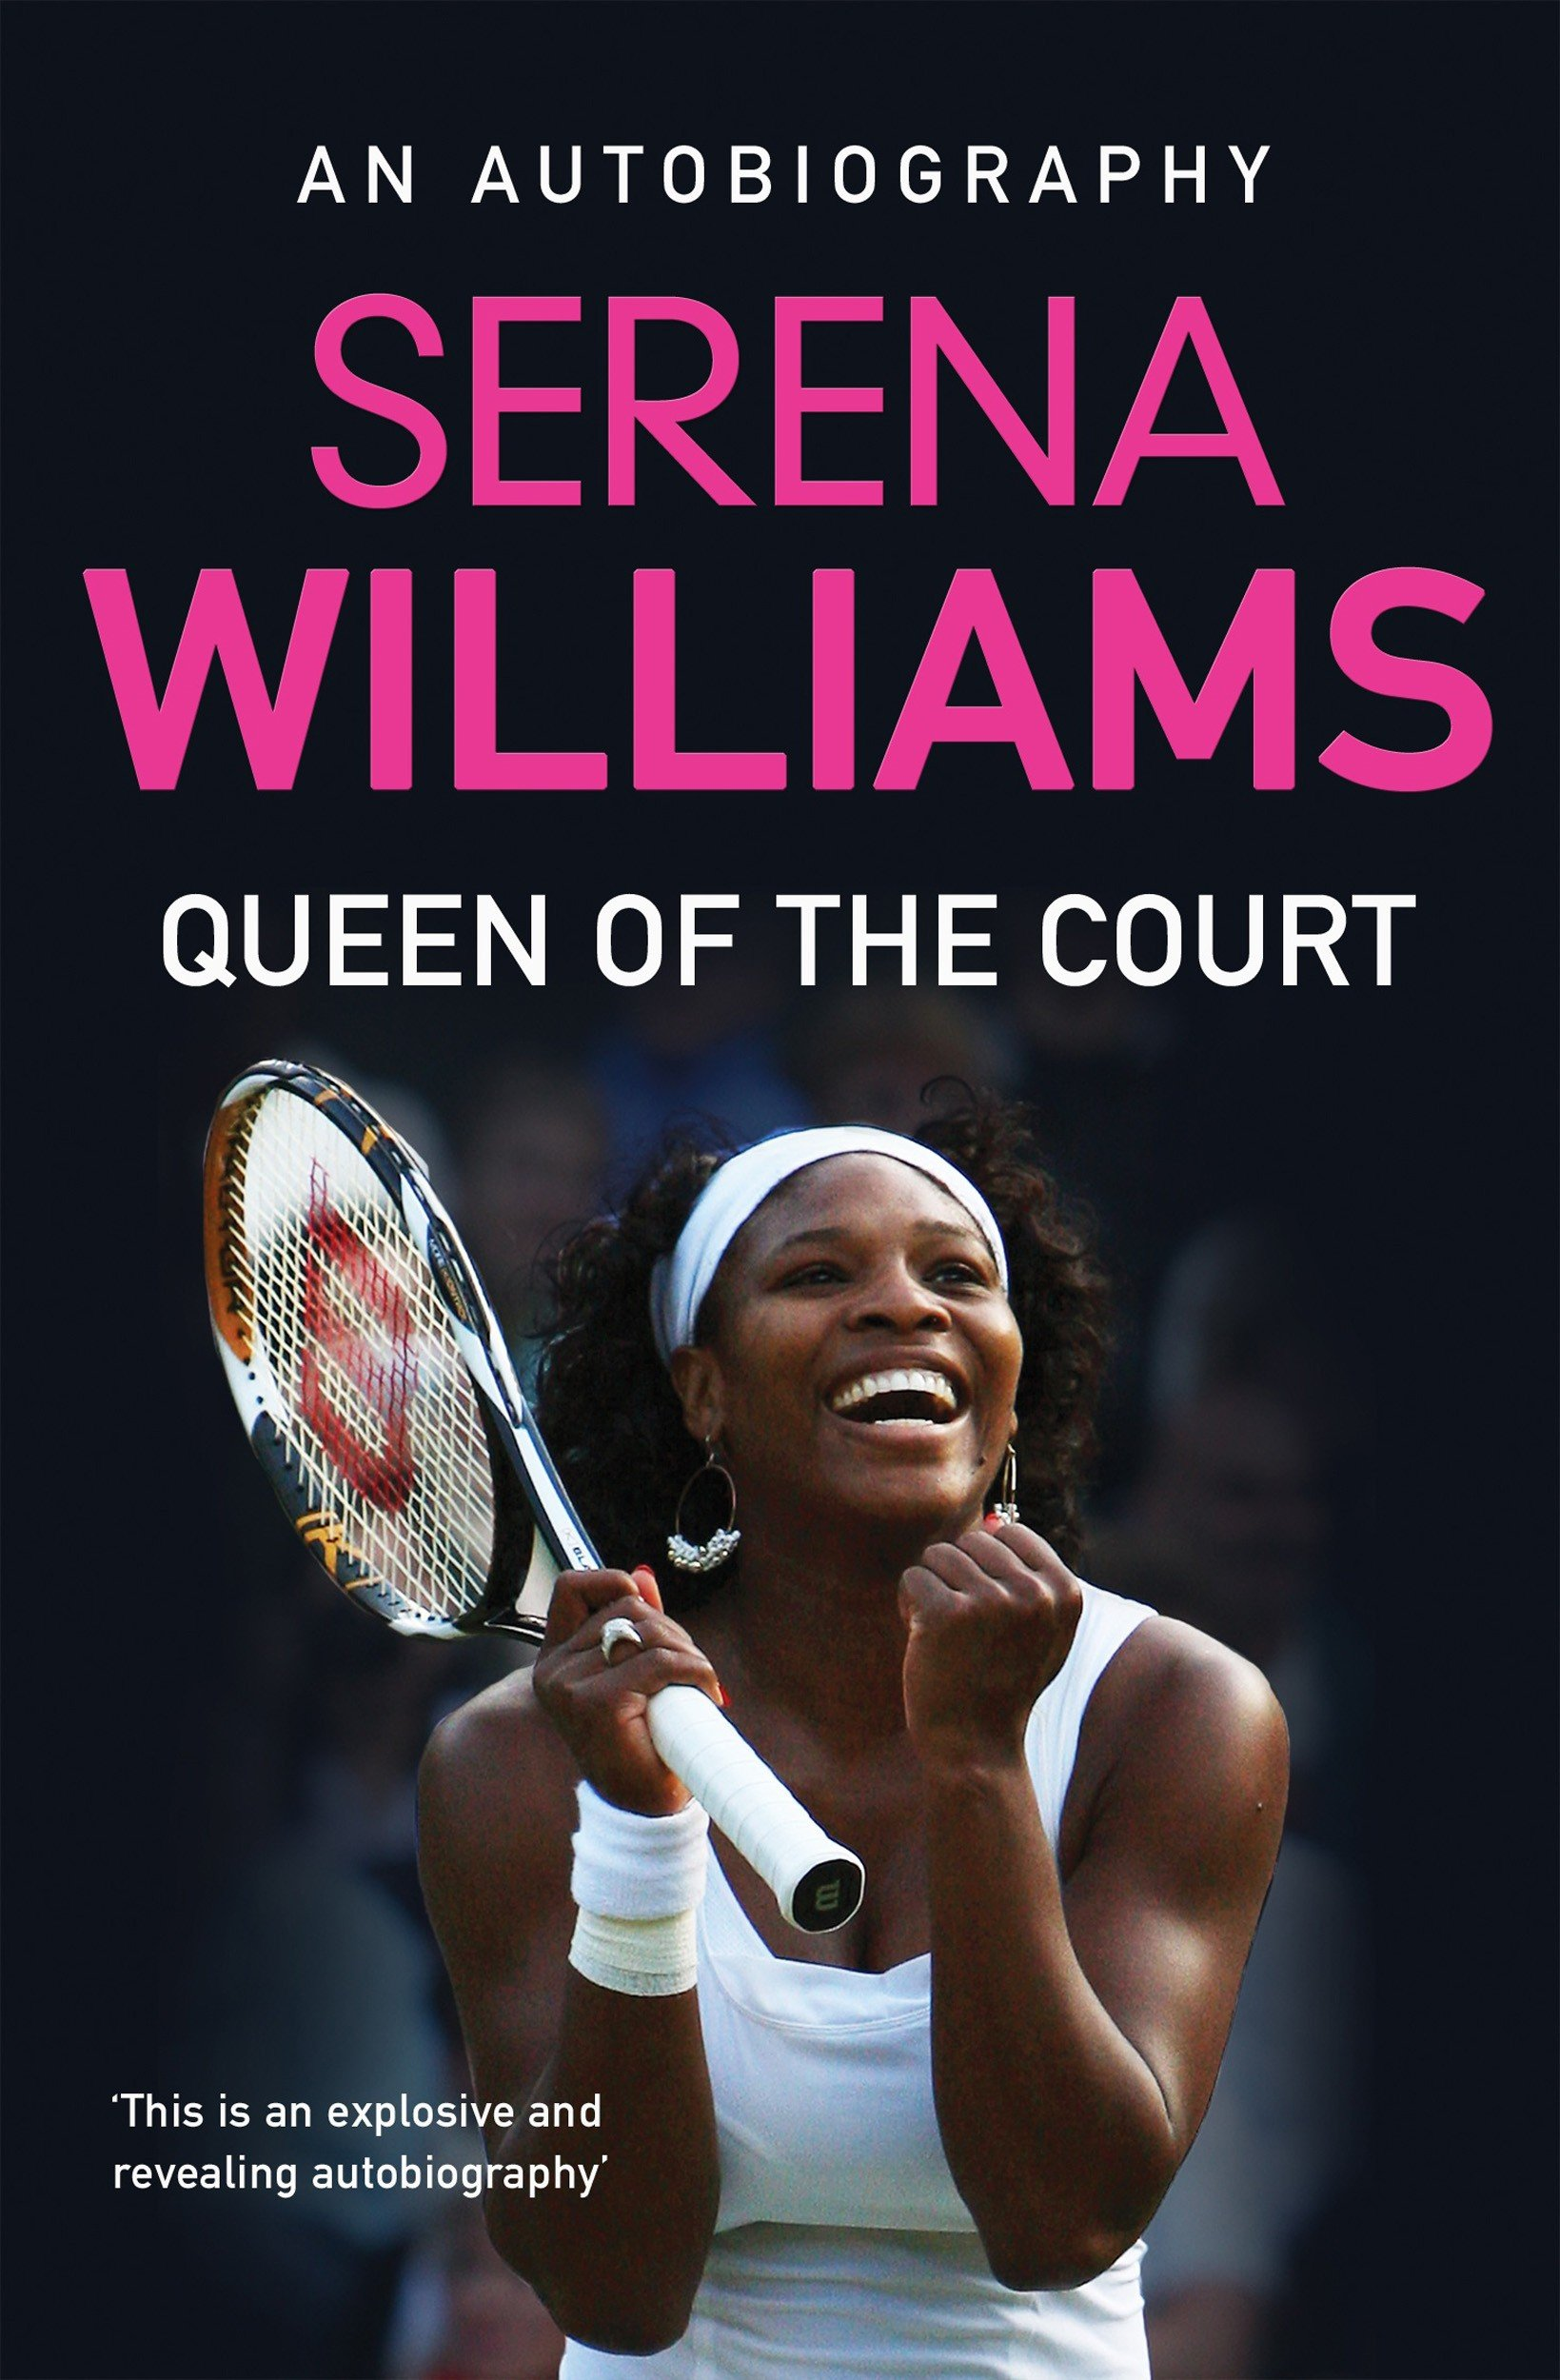 My life queen of the court serena williams 9781847375445 amazon my life queen of the court serena williams 9781847375445 amazon books nvjuhfo Image collections